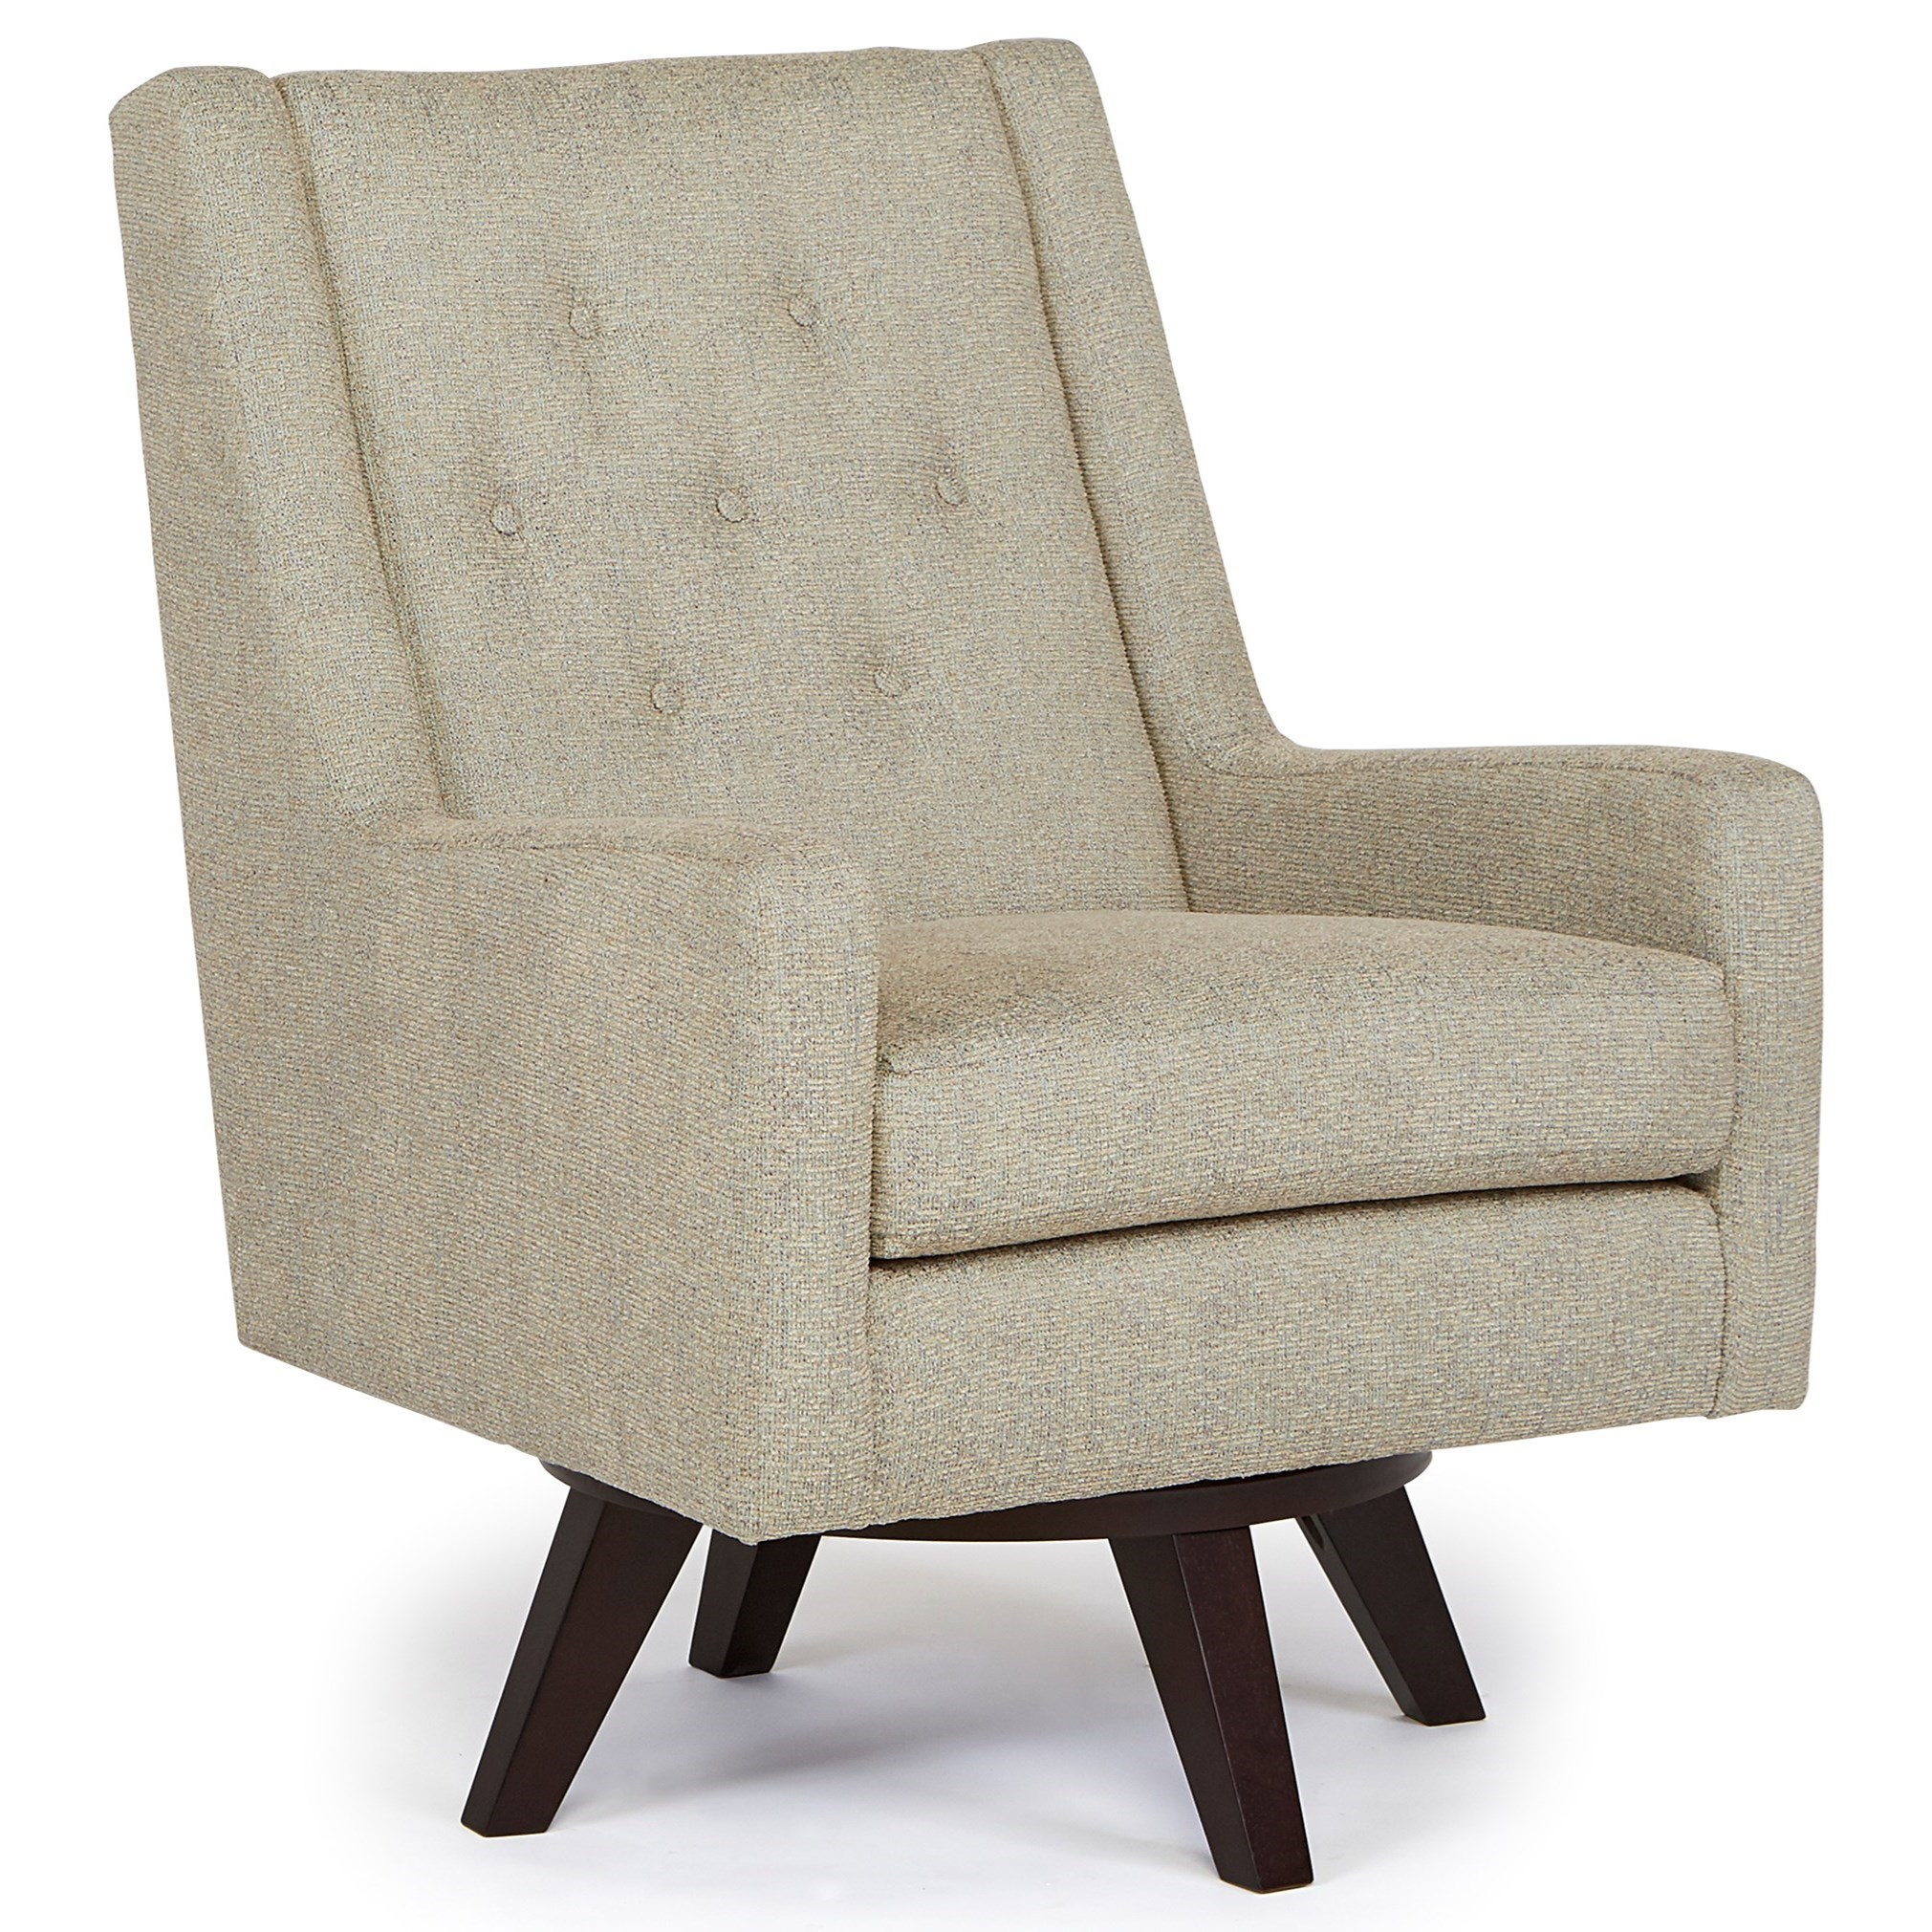 Chairs - Swivel Barrel Kale Swivel Chair by Best Home Furnishings at Lapeer Furniture & Mattress Center